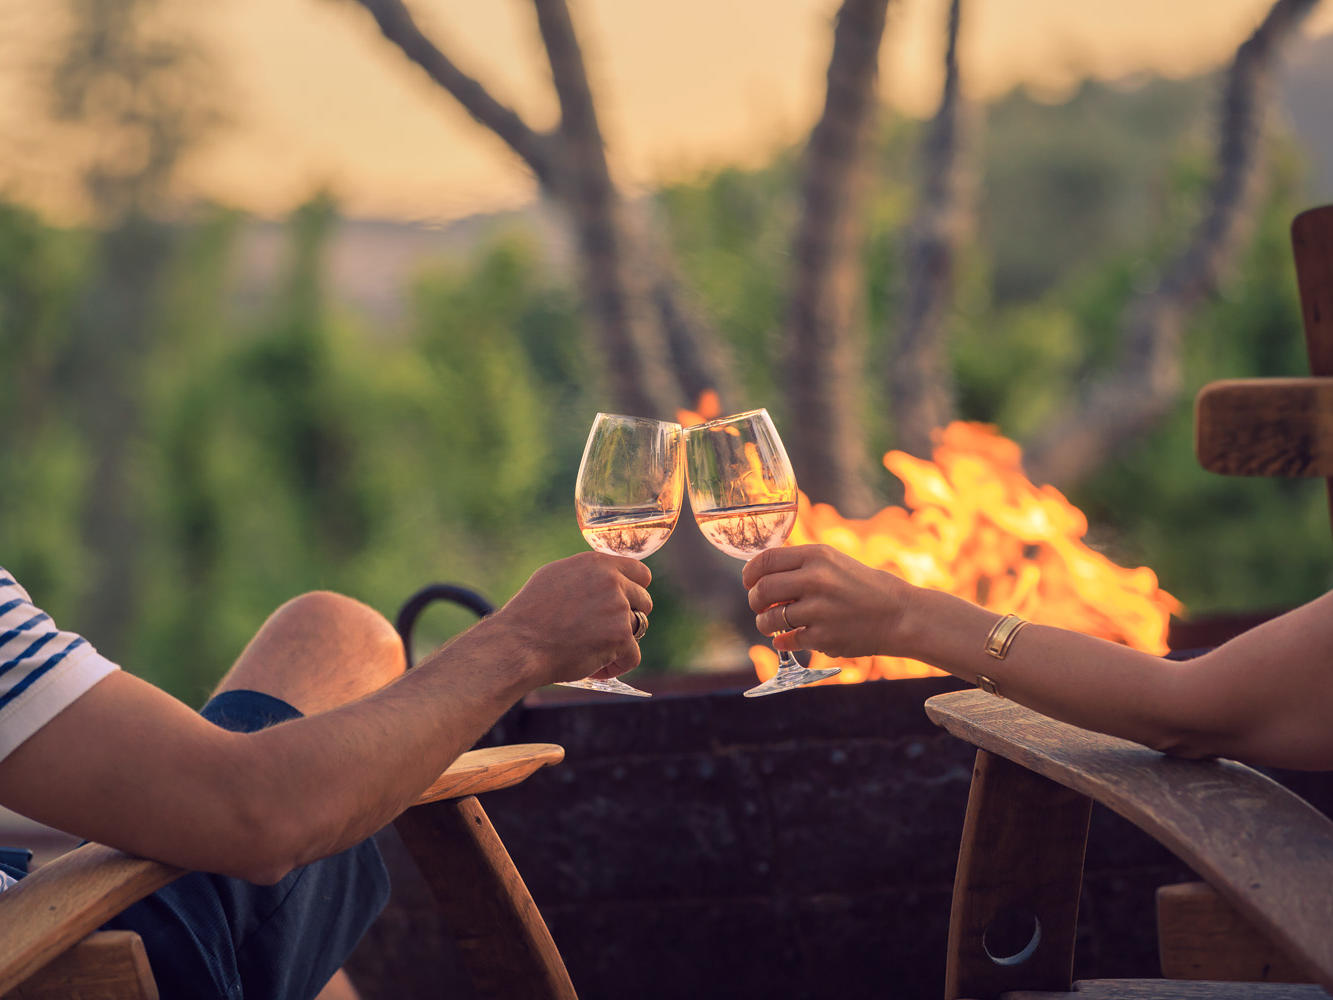 Guests sitting in front of fire pit with wine glass in hands